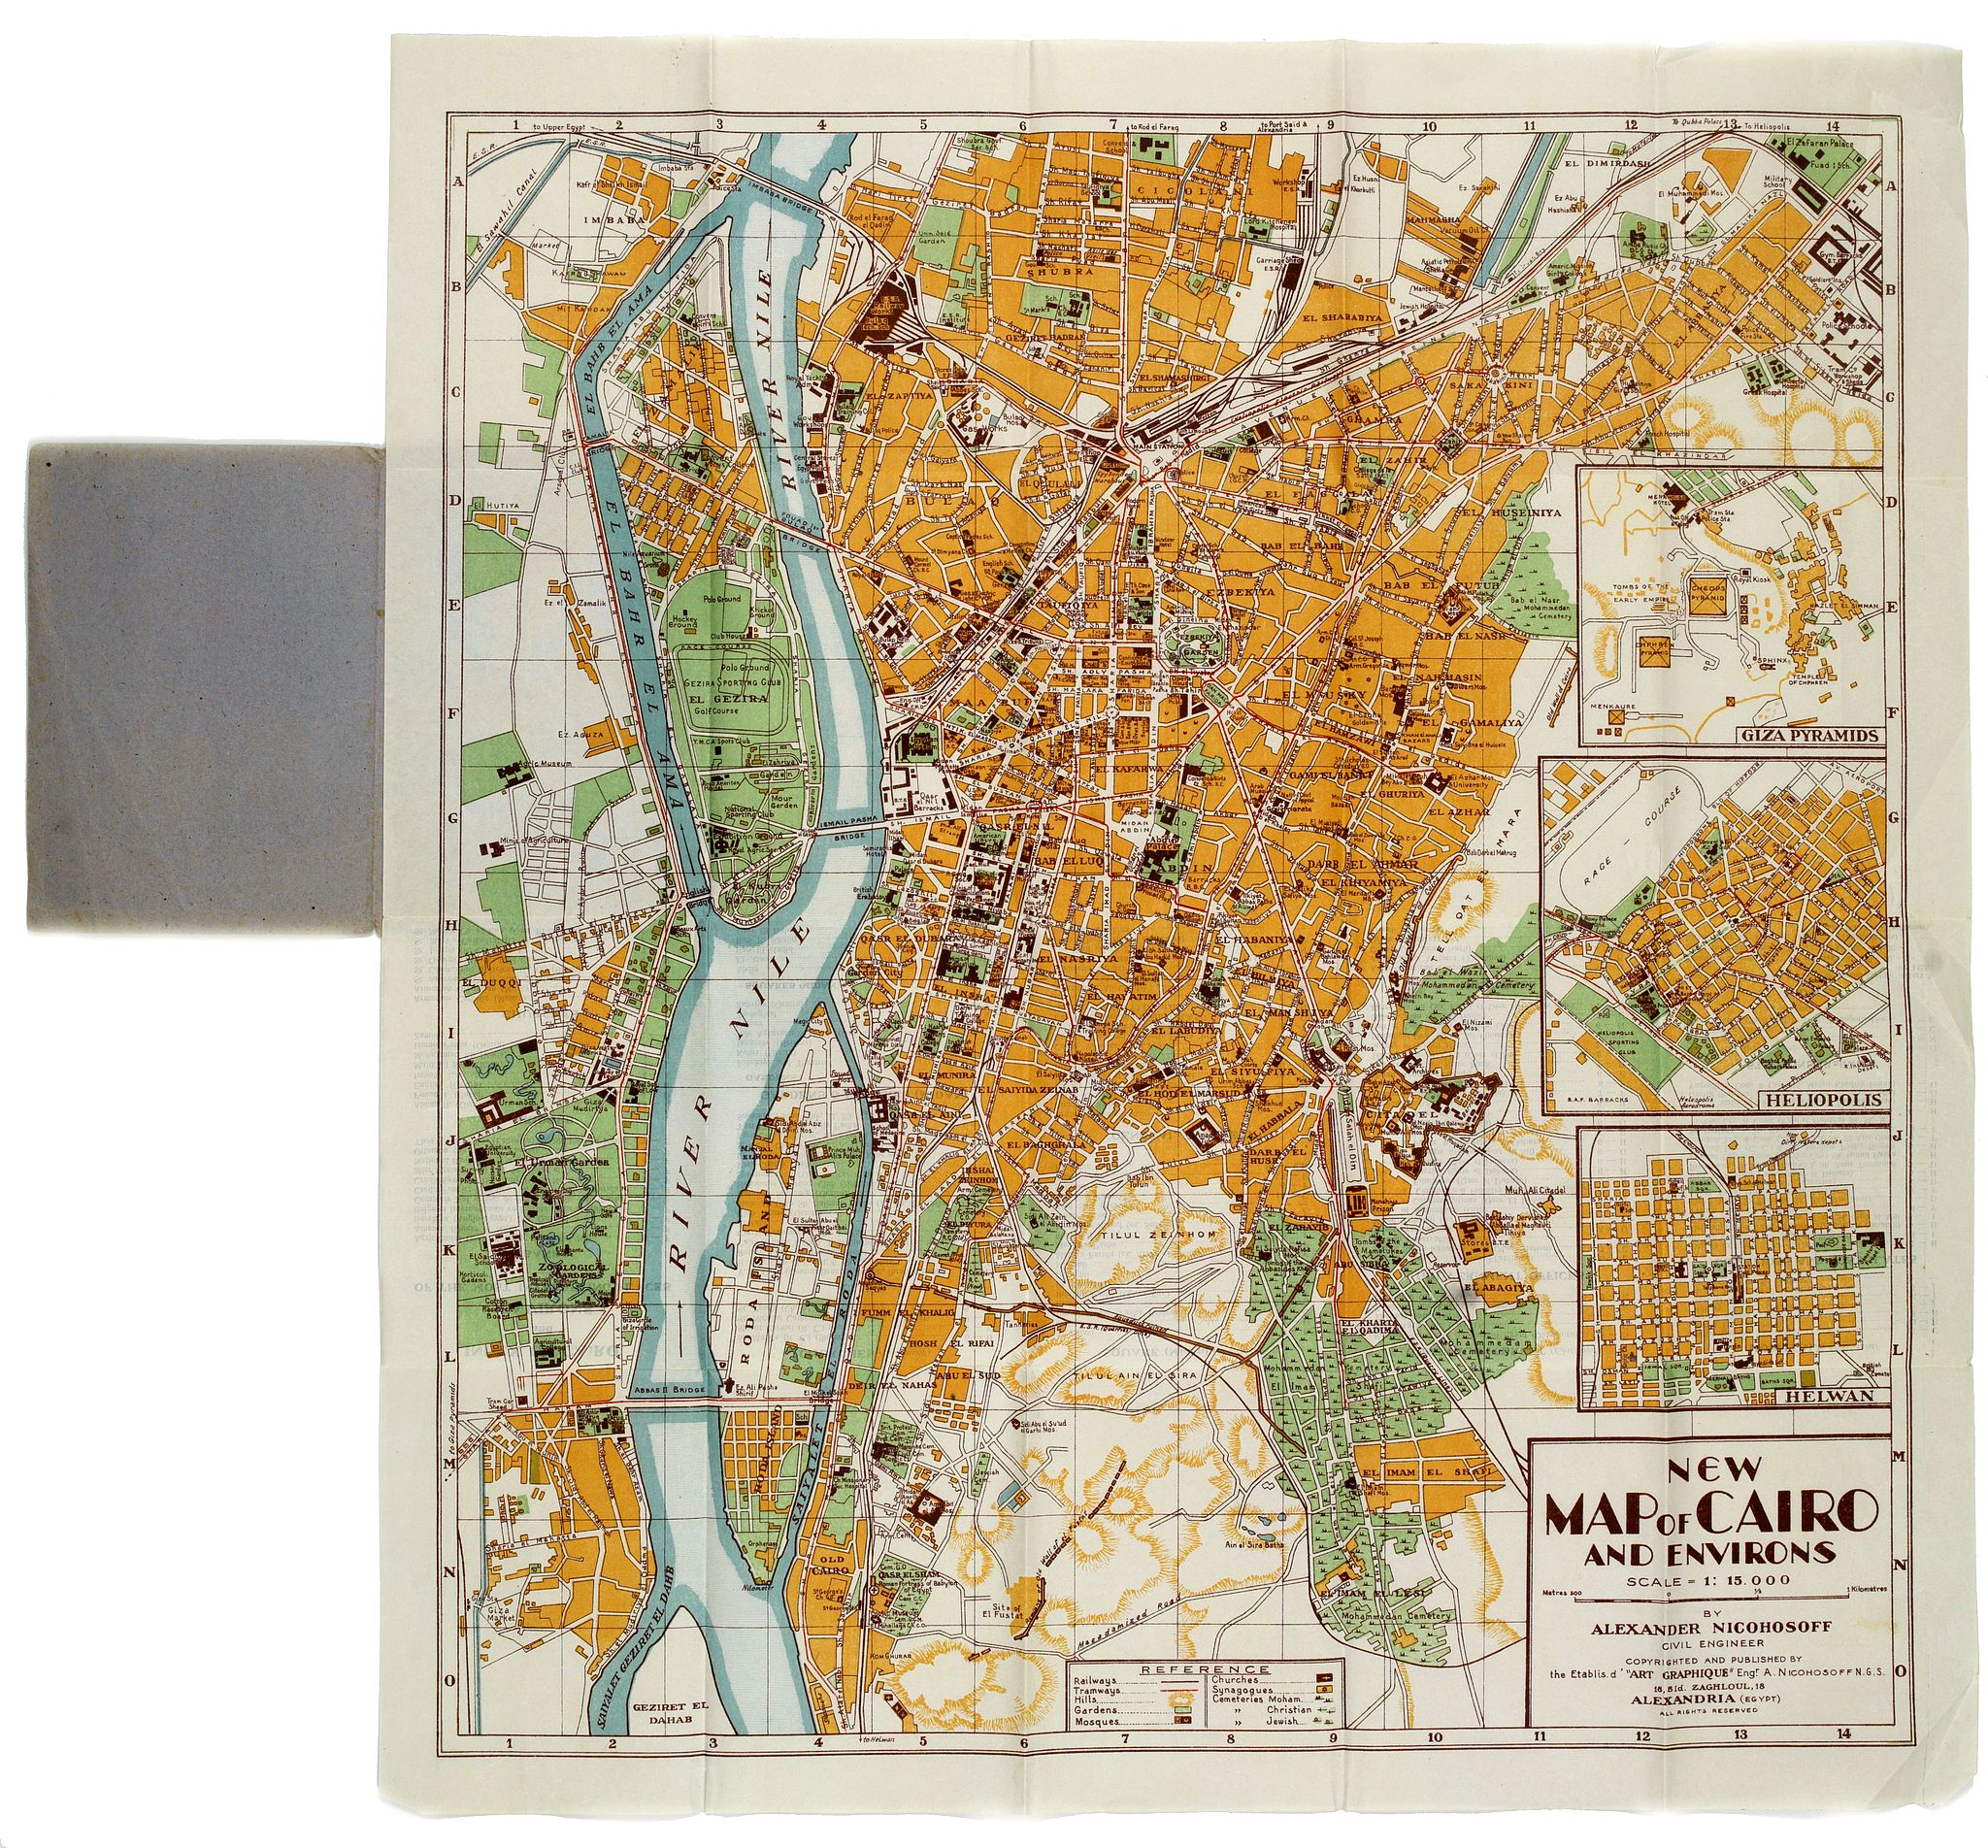 NICOHOSOFF, Alexander. -  New Map of Cairo and Environs.